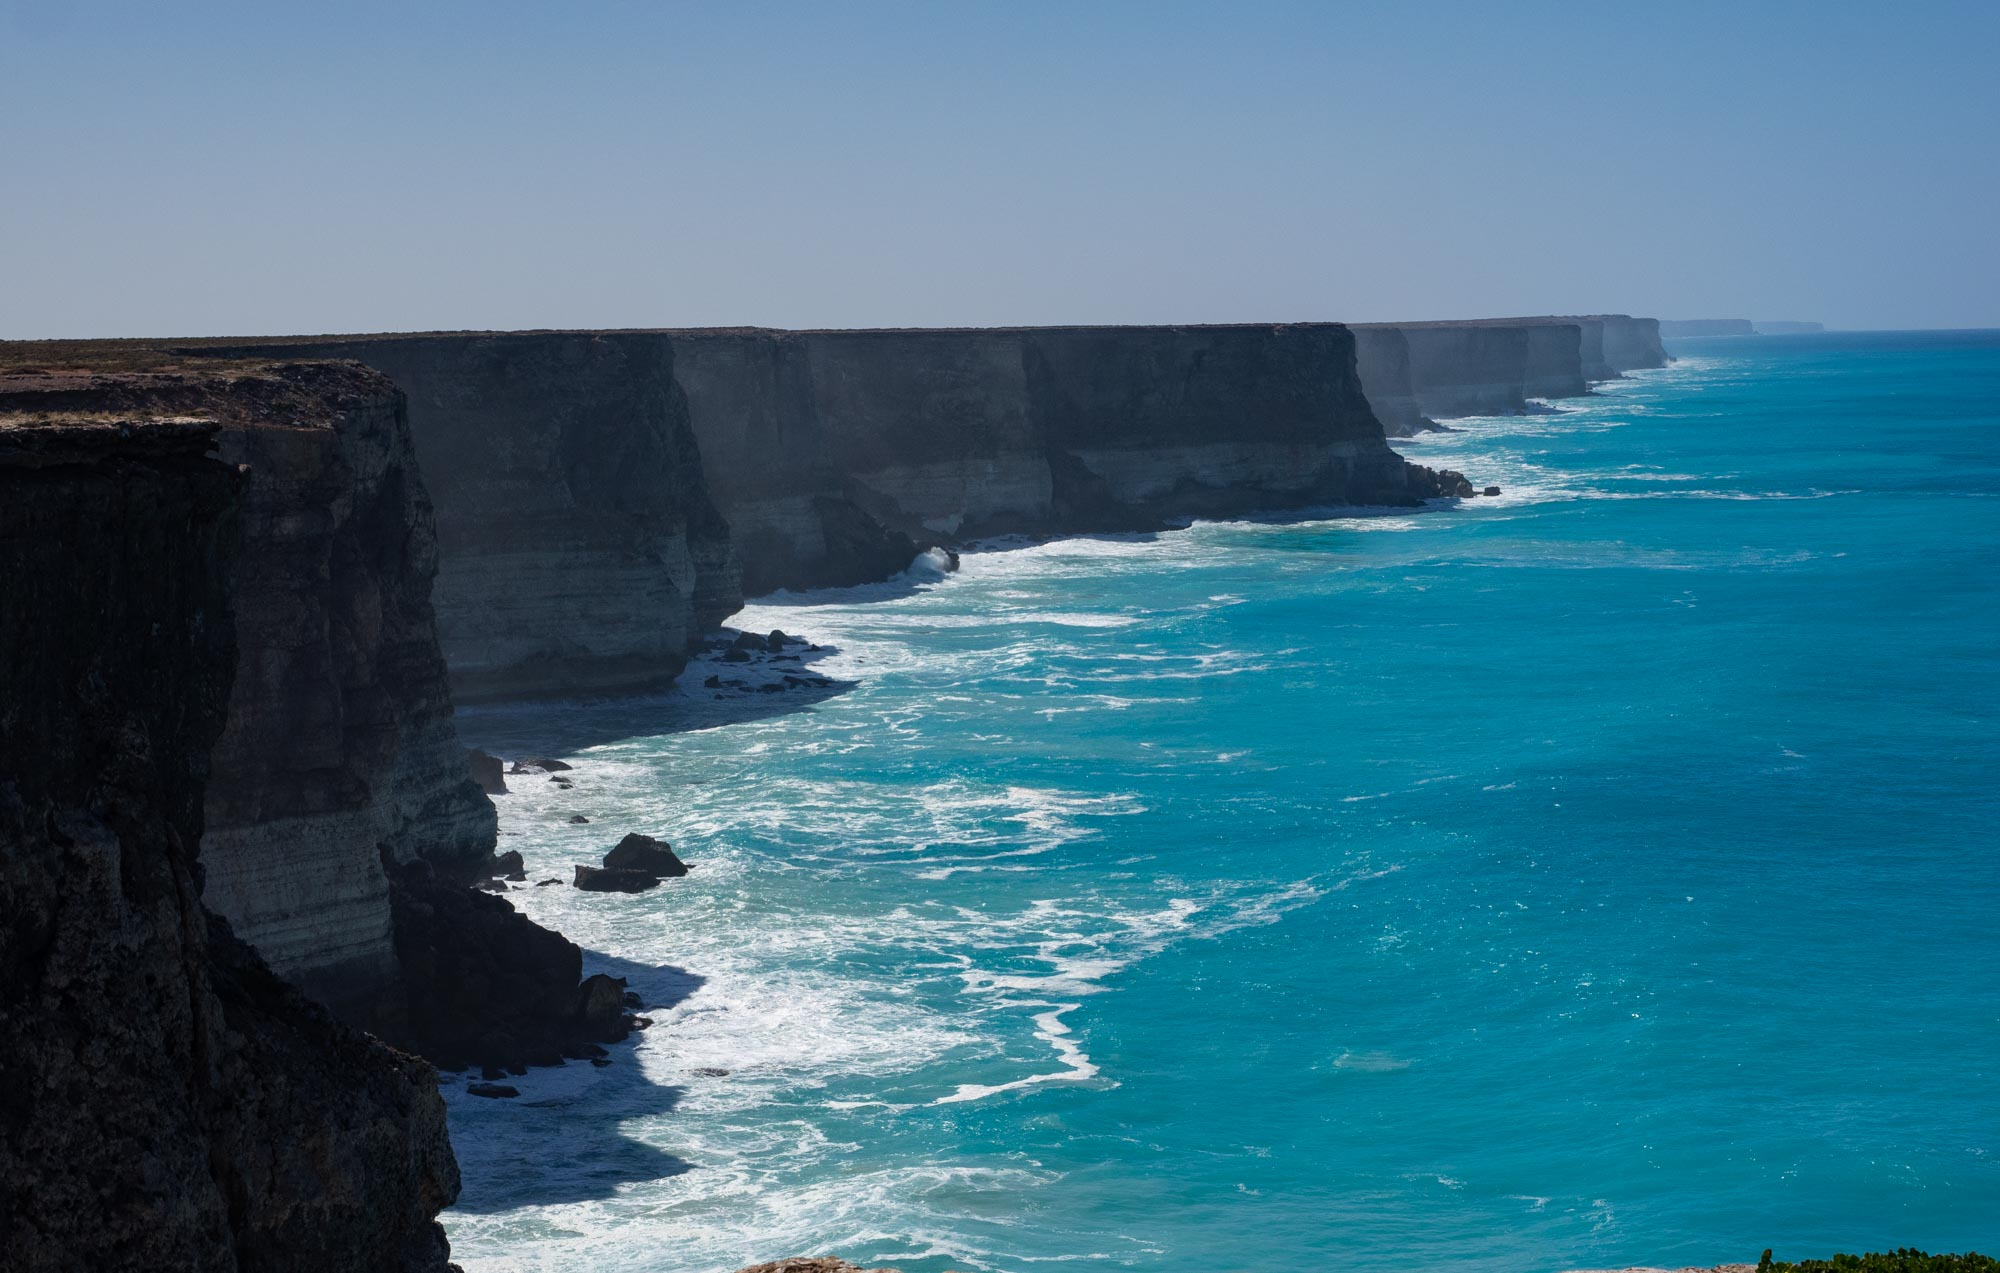 Looking east from this viewing point - the 200km long line of the Bunda Cliffs stretches away to the horizon.